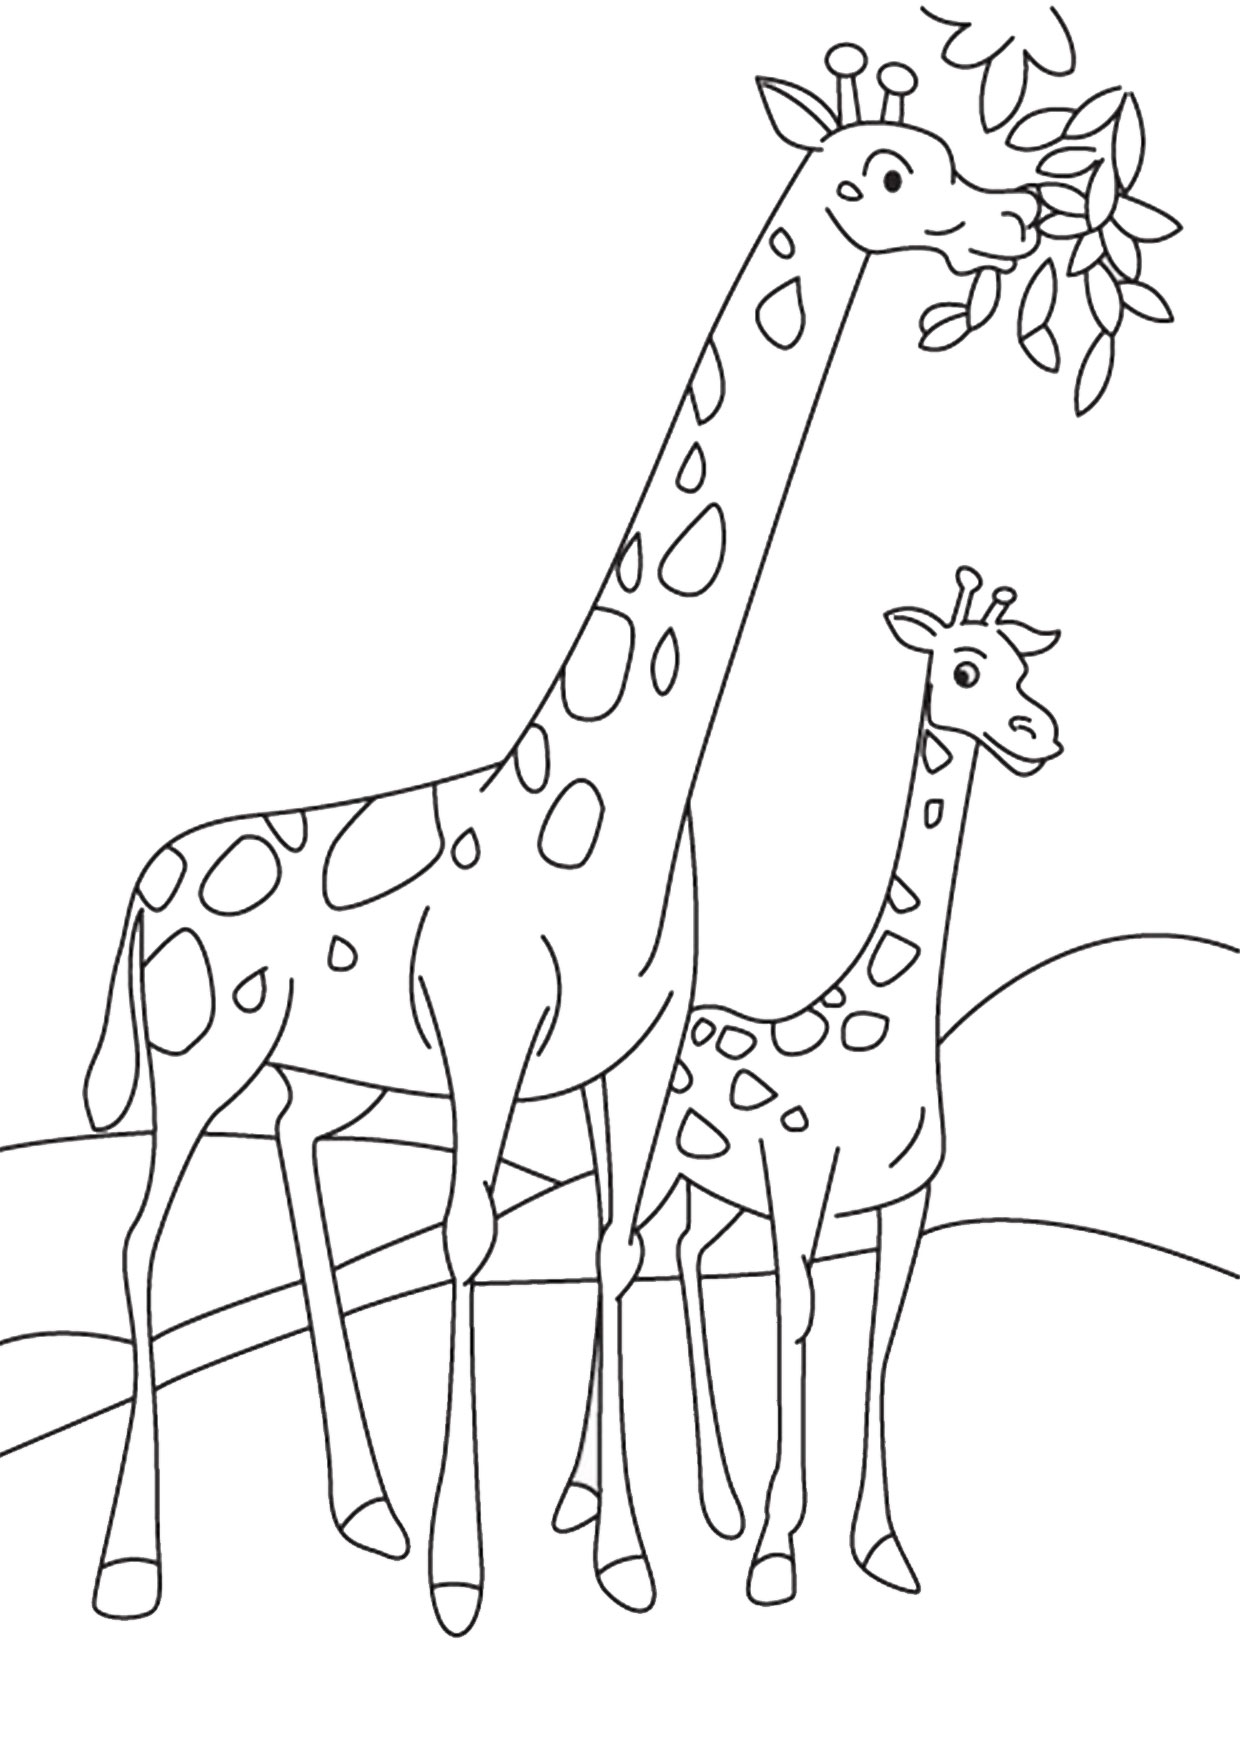 Giraffa in versione cartoon 02